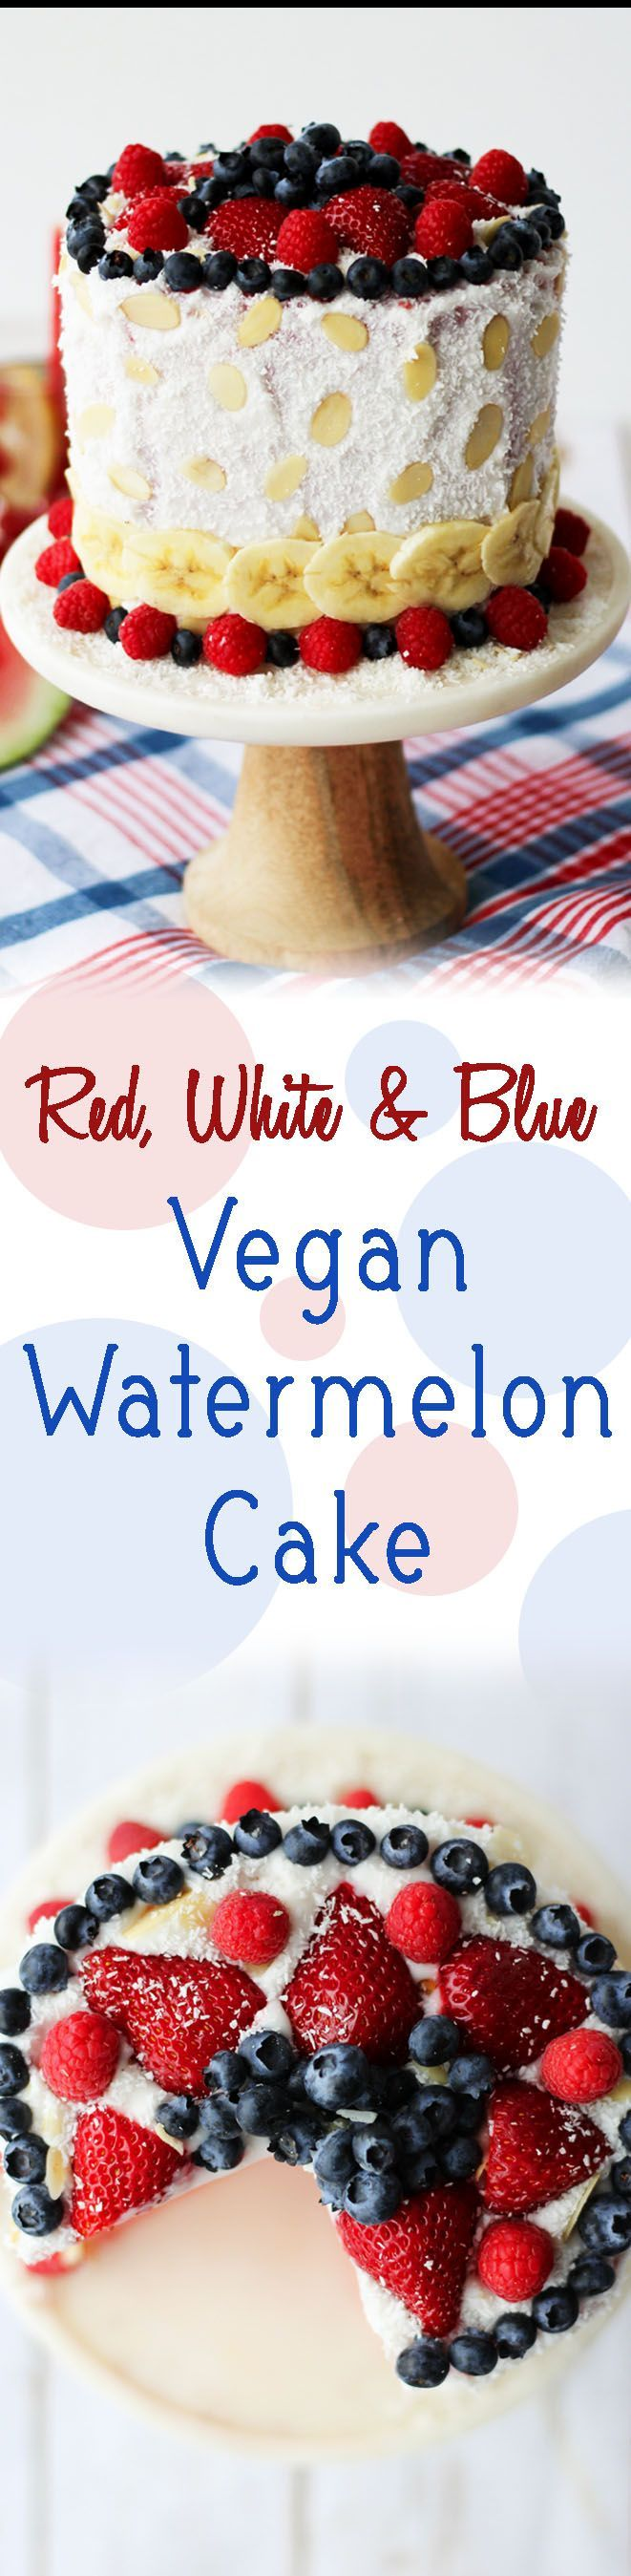 A vegan dairy free, gluten free, low fat watermelon cake for 4th of July!!